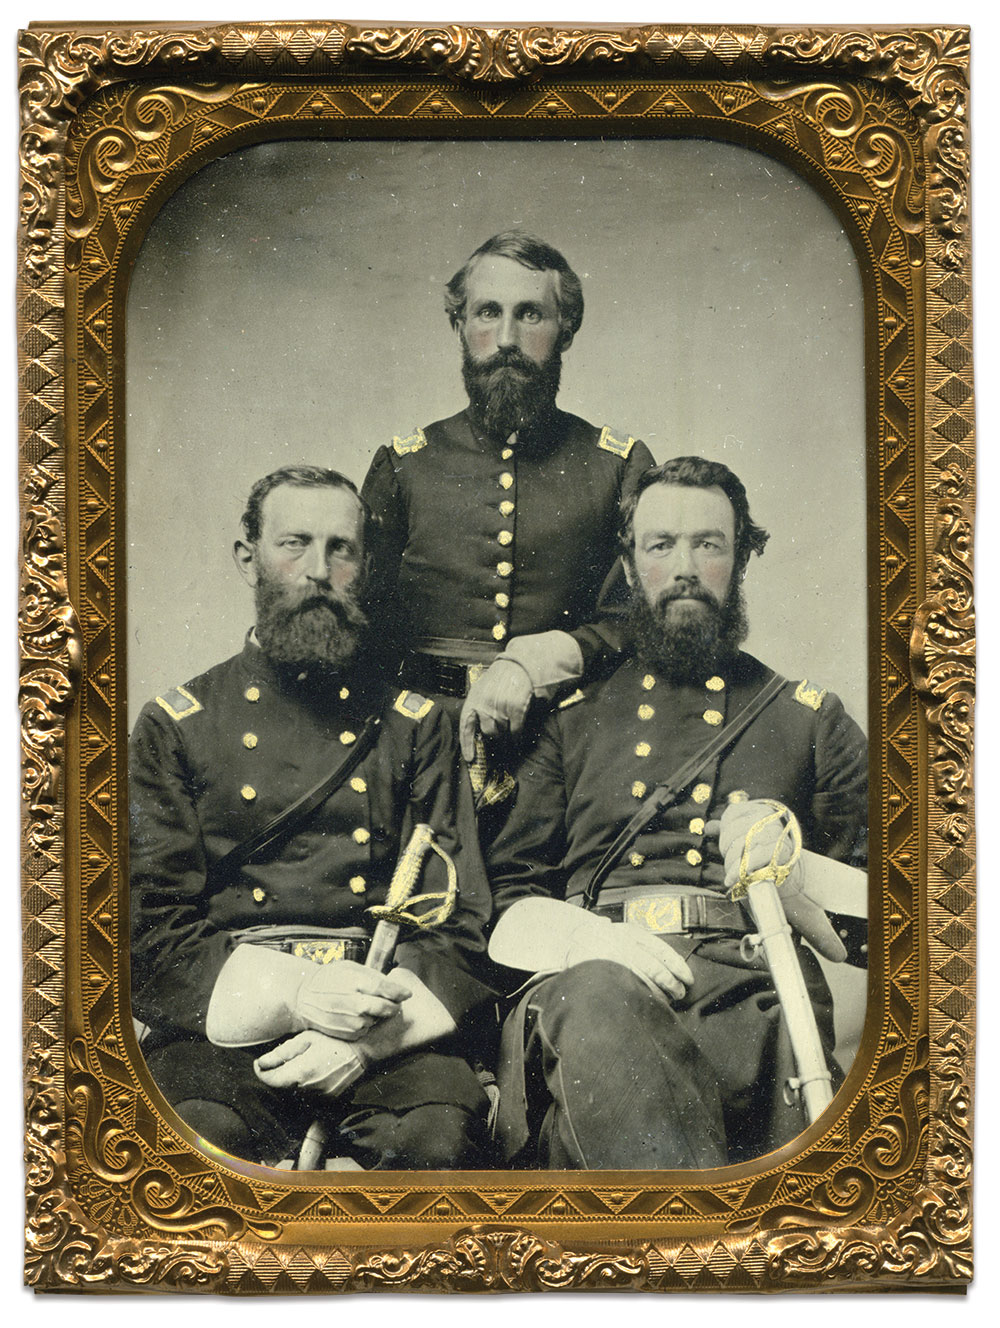 Col. Charles L. Matthies, left, 1st Lt. and Adjutant Robert F. Patterson, center, and Maj. William S. Robertson. Author's collection.